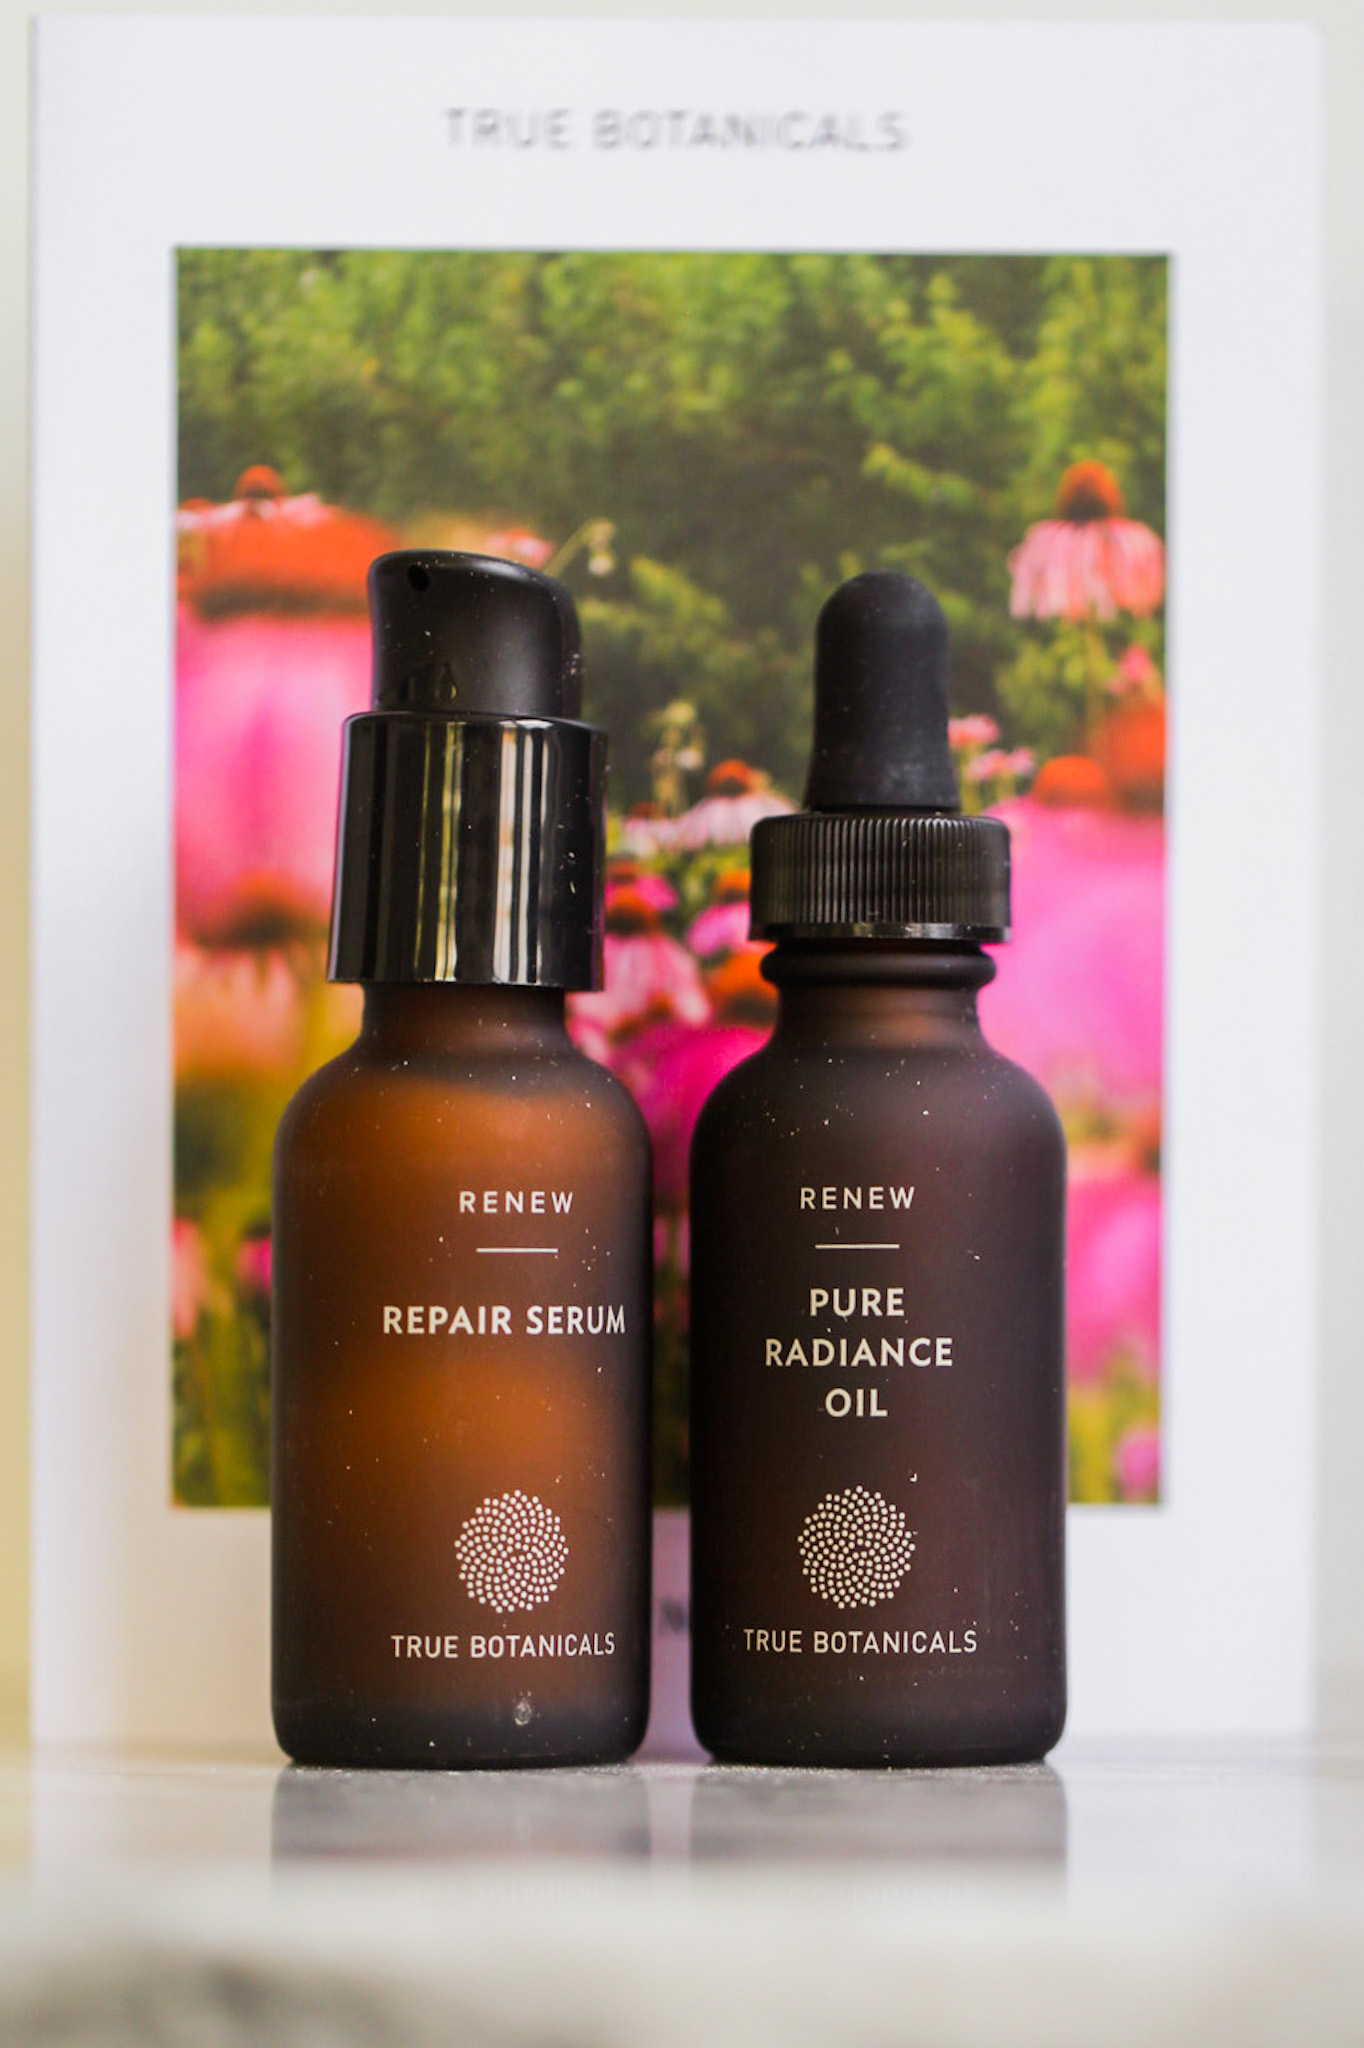 True Botanicals renew products